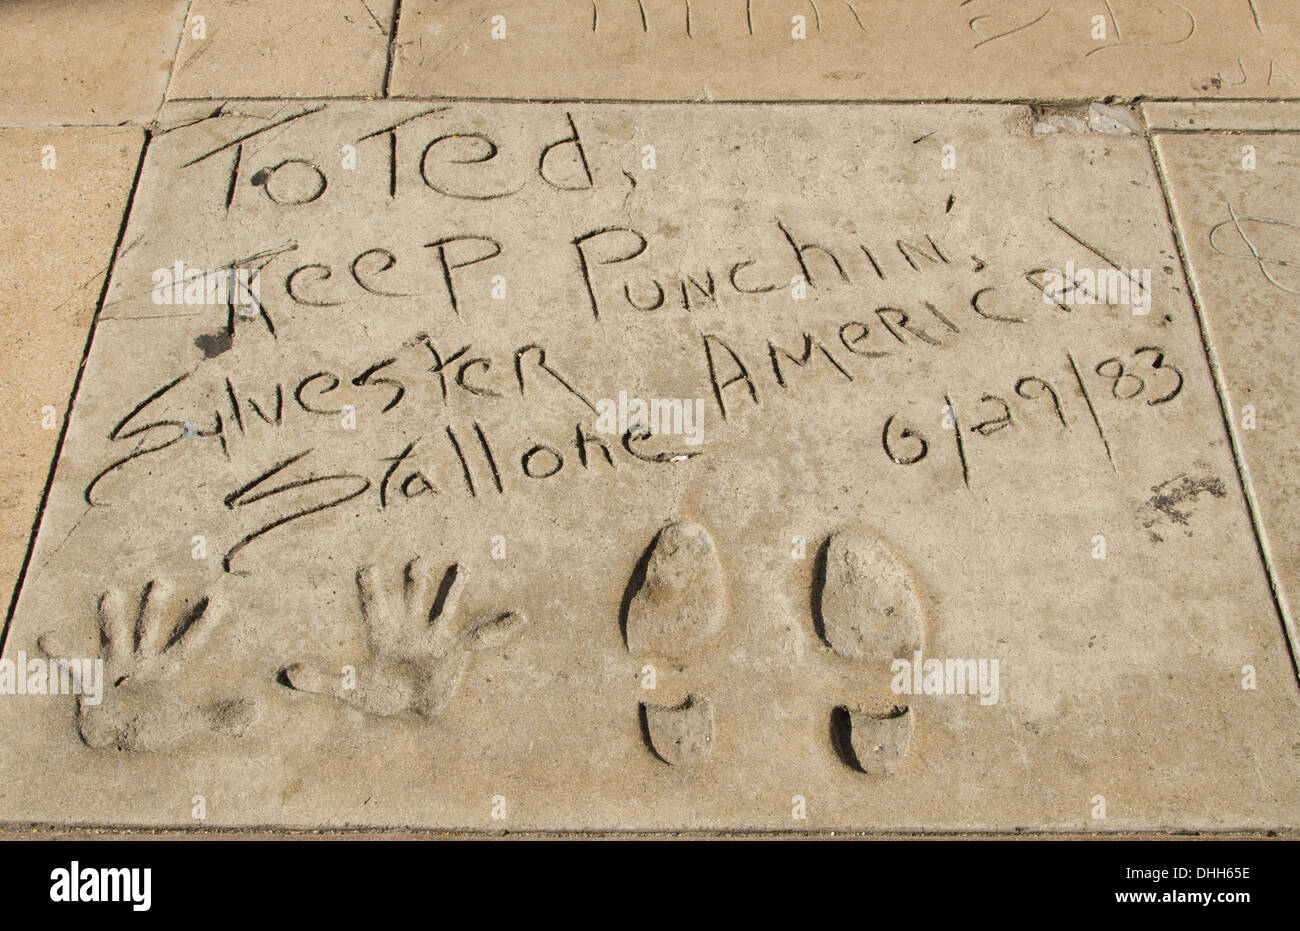 Los Angeles California CA Silvester Stallone hands and feet in cement at the famous TCL Chinese Theater - Stock Image